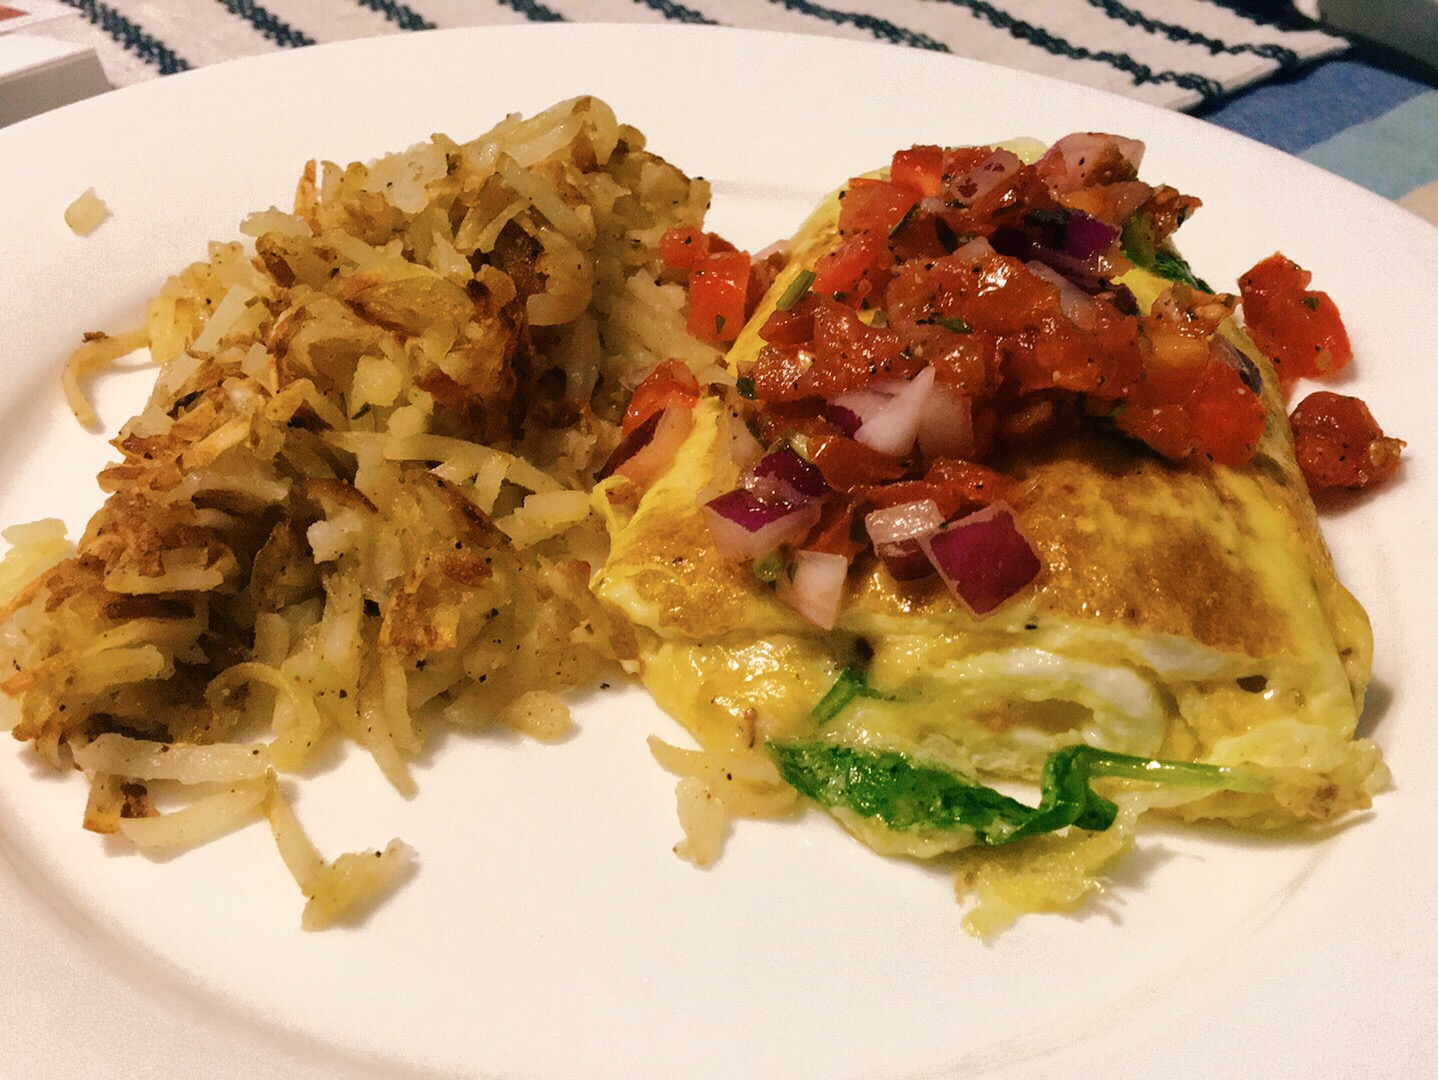 Hash browns and an arugula omelette topped with pico de gallo.